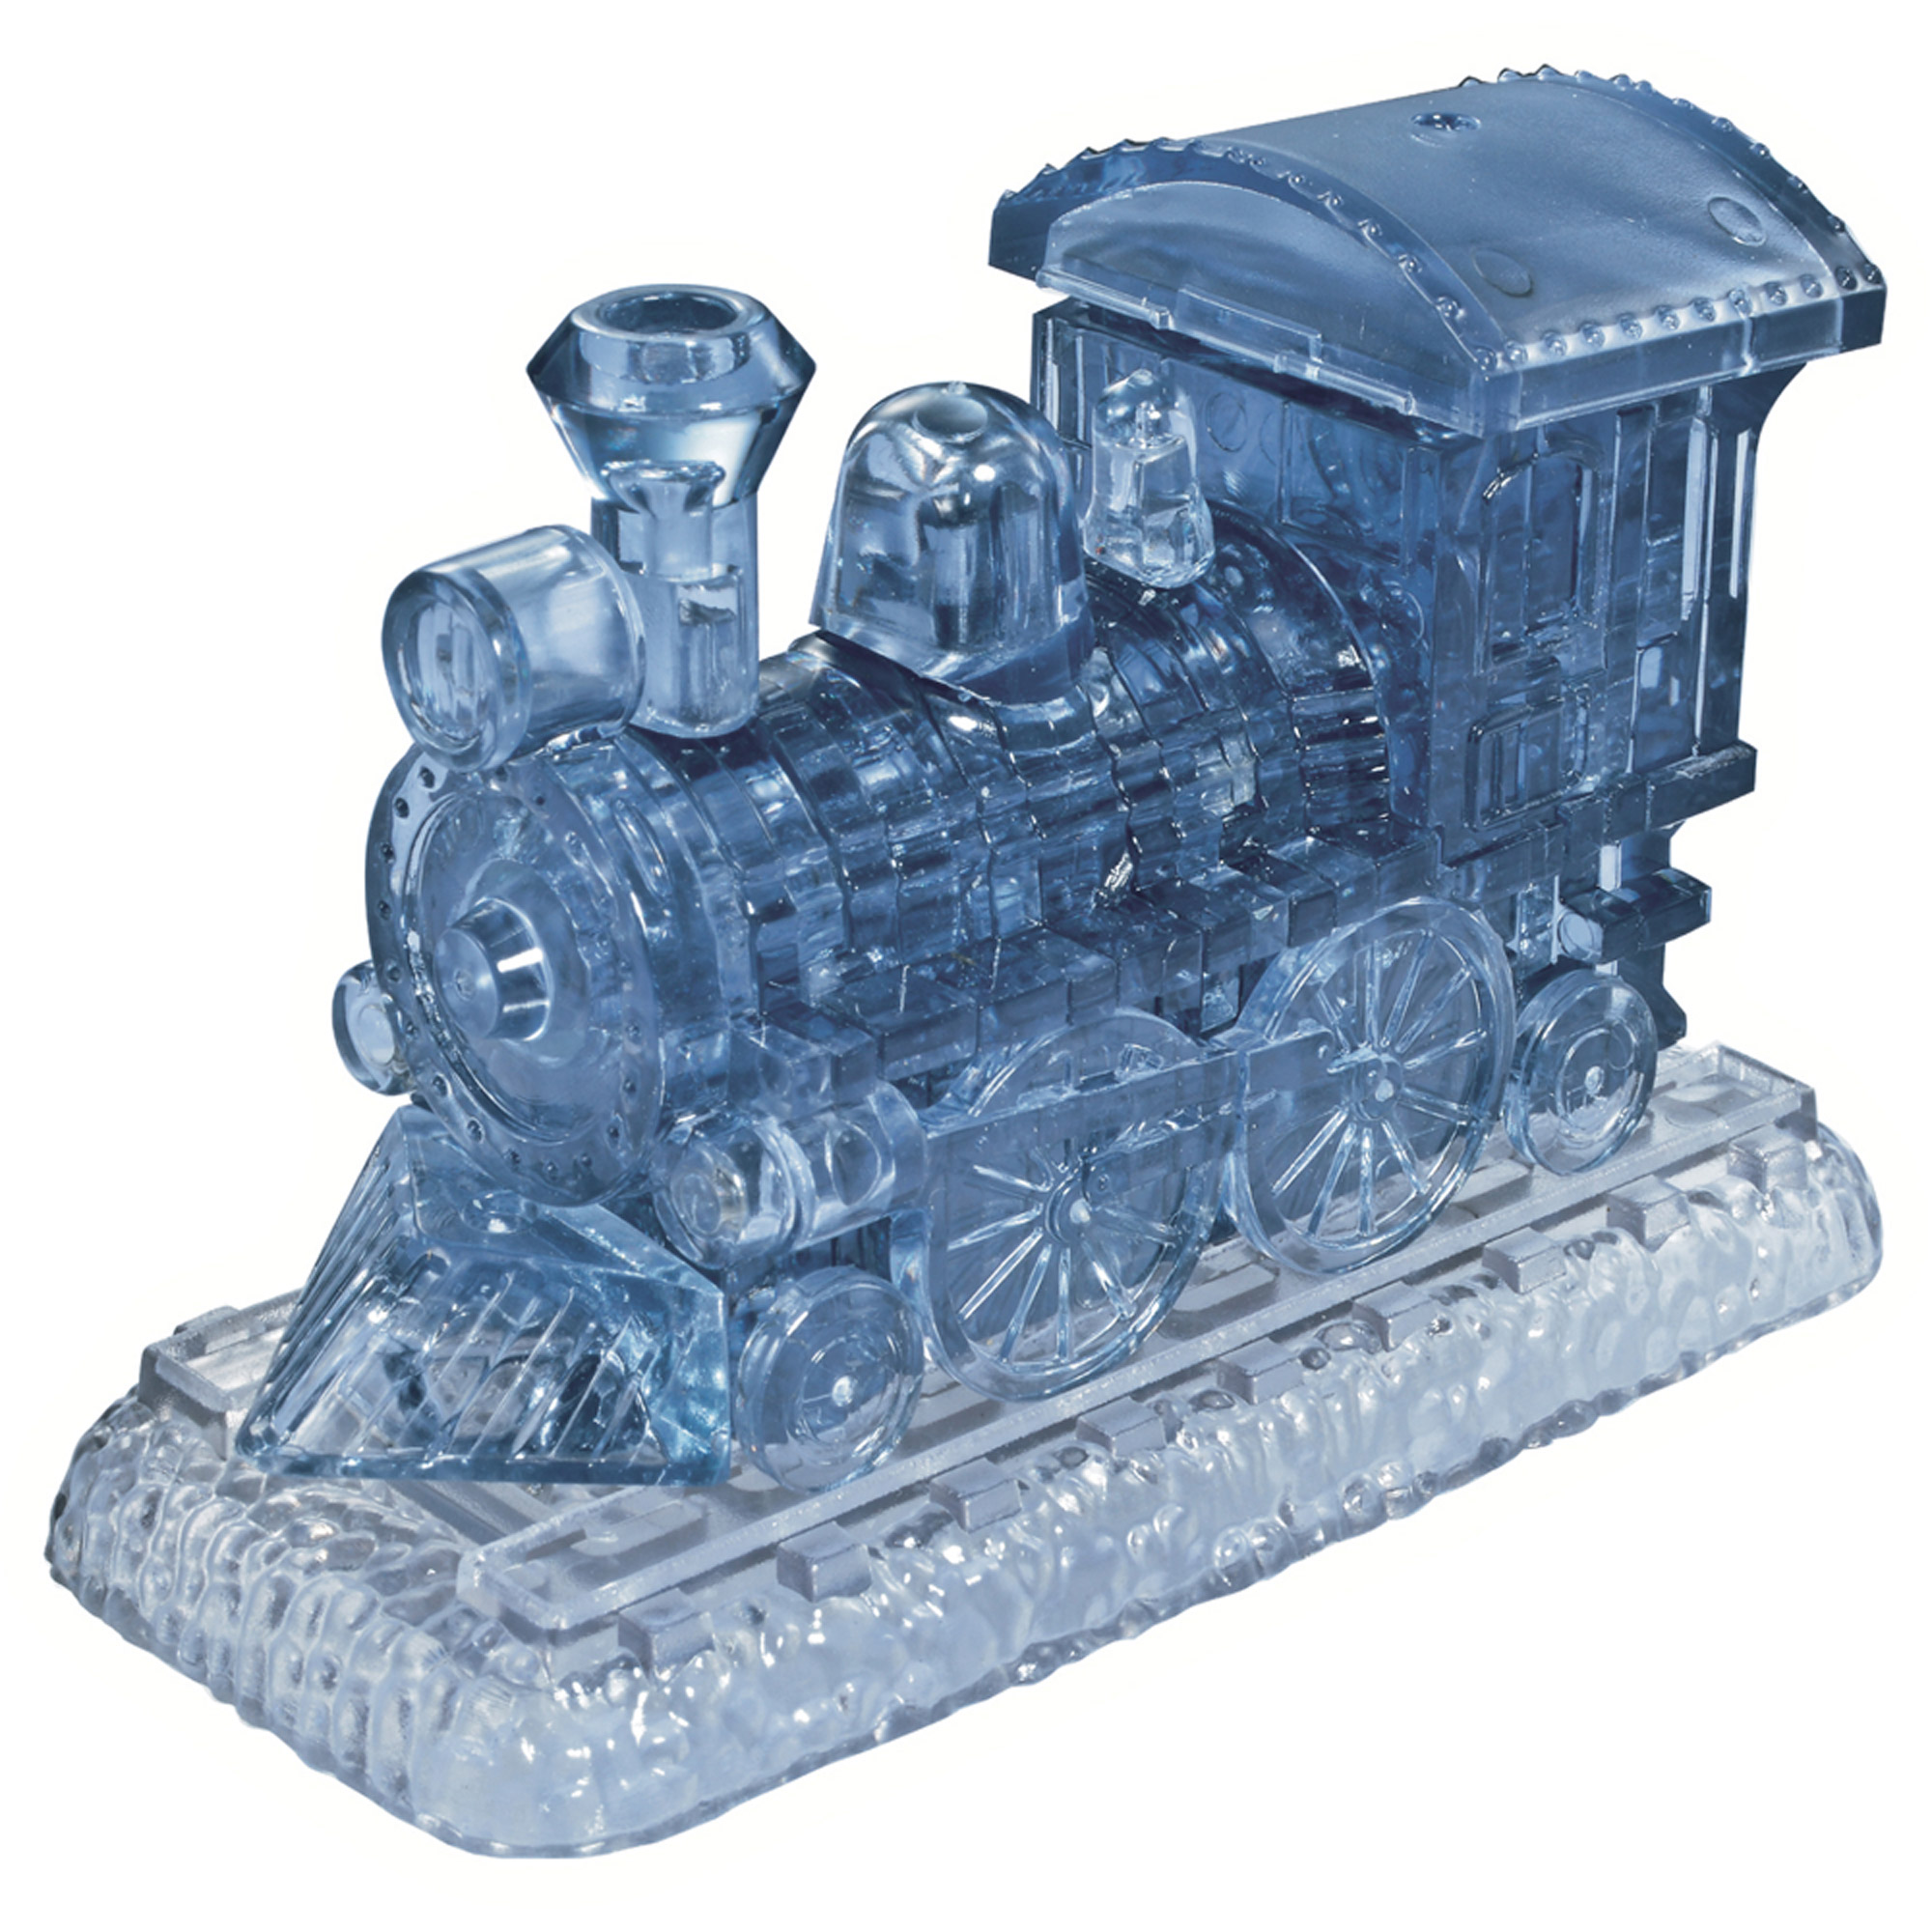 3D Crystal Puzzle Locomotive Puzzle, 38 Pieces